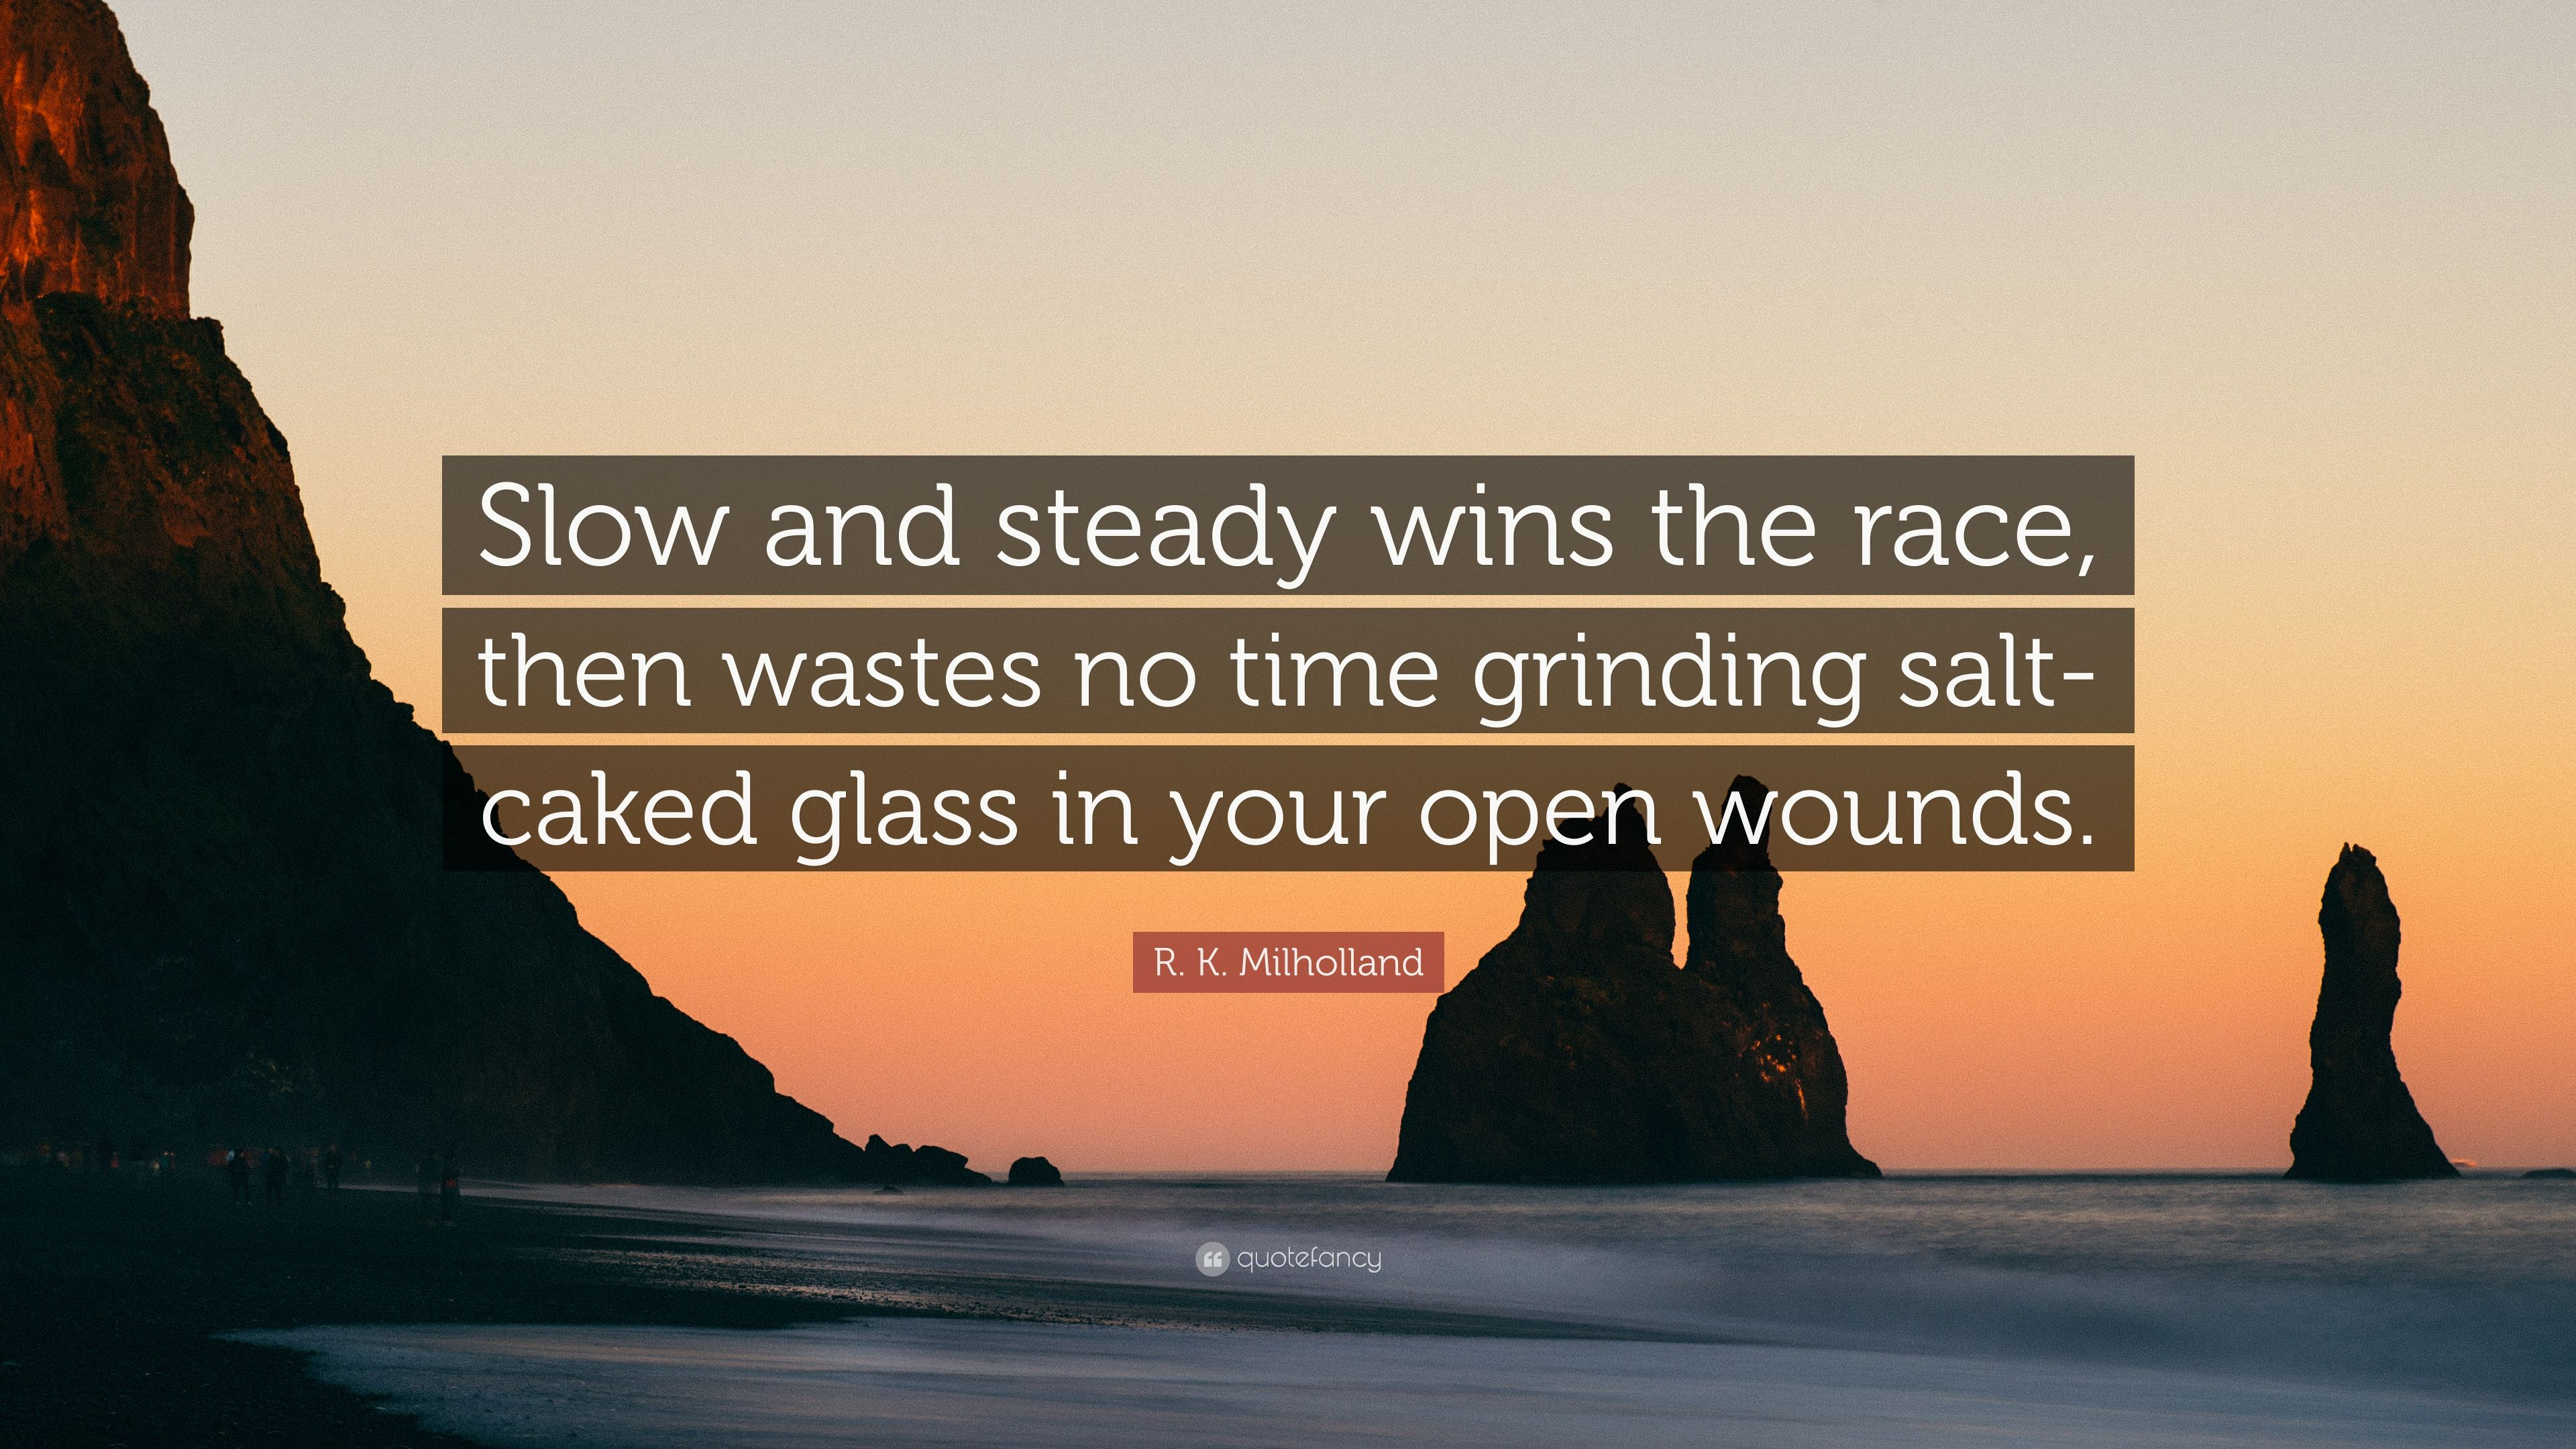 R K Milholland Quote Slow And Steady Wins The Race Then Wastes No Time Grinding Salt Caked Glass In Your Open Wounds 7 Wallpapers Quotefancy